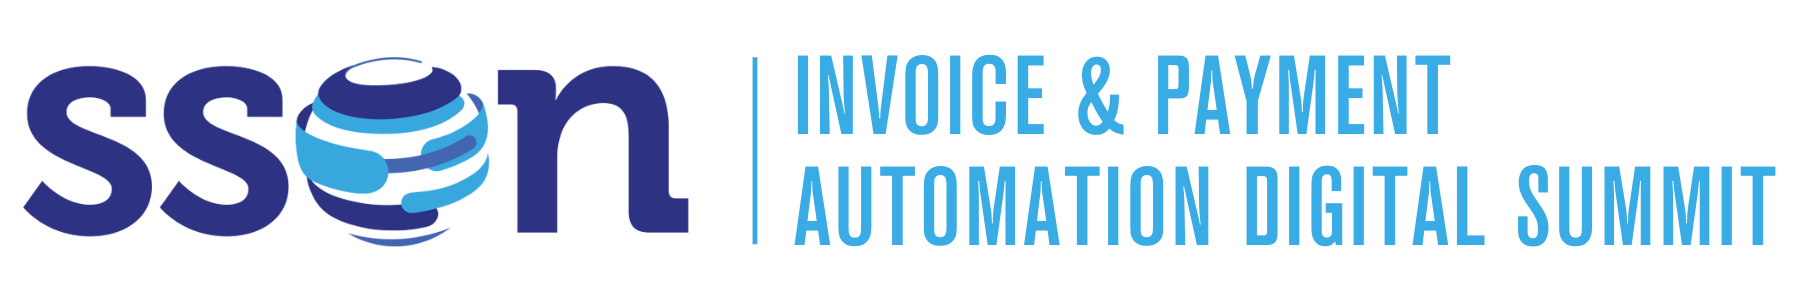 Invoice & Payment Automation Digital Summit